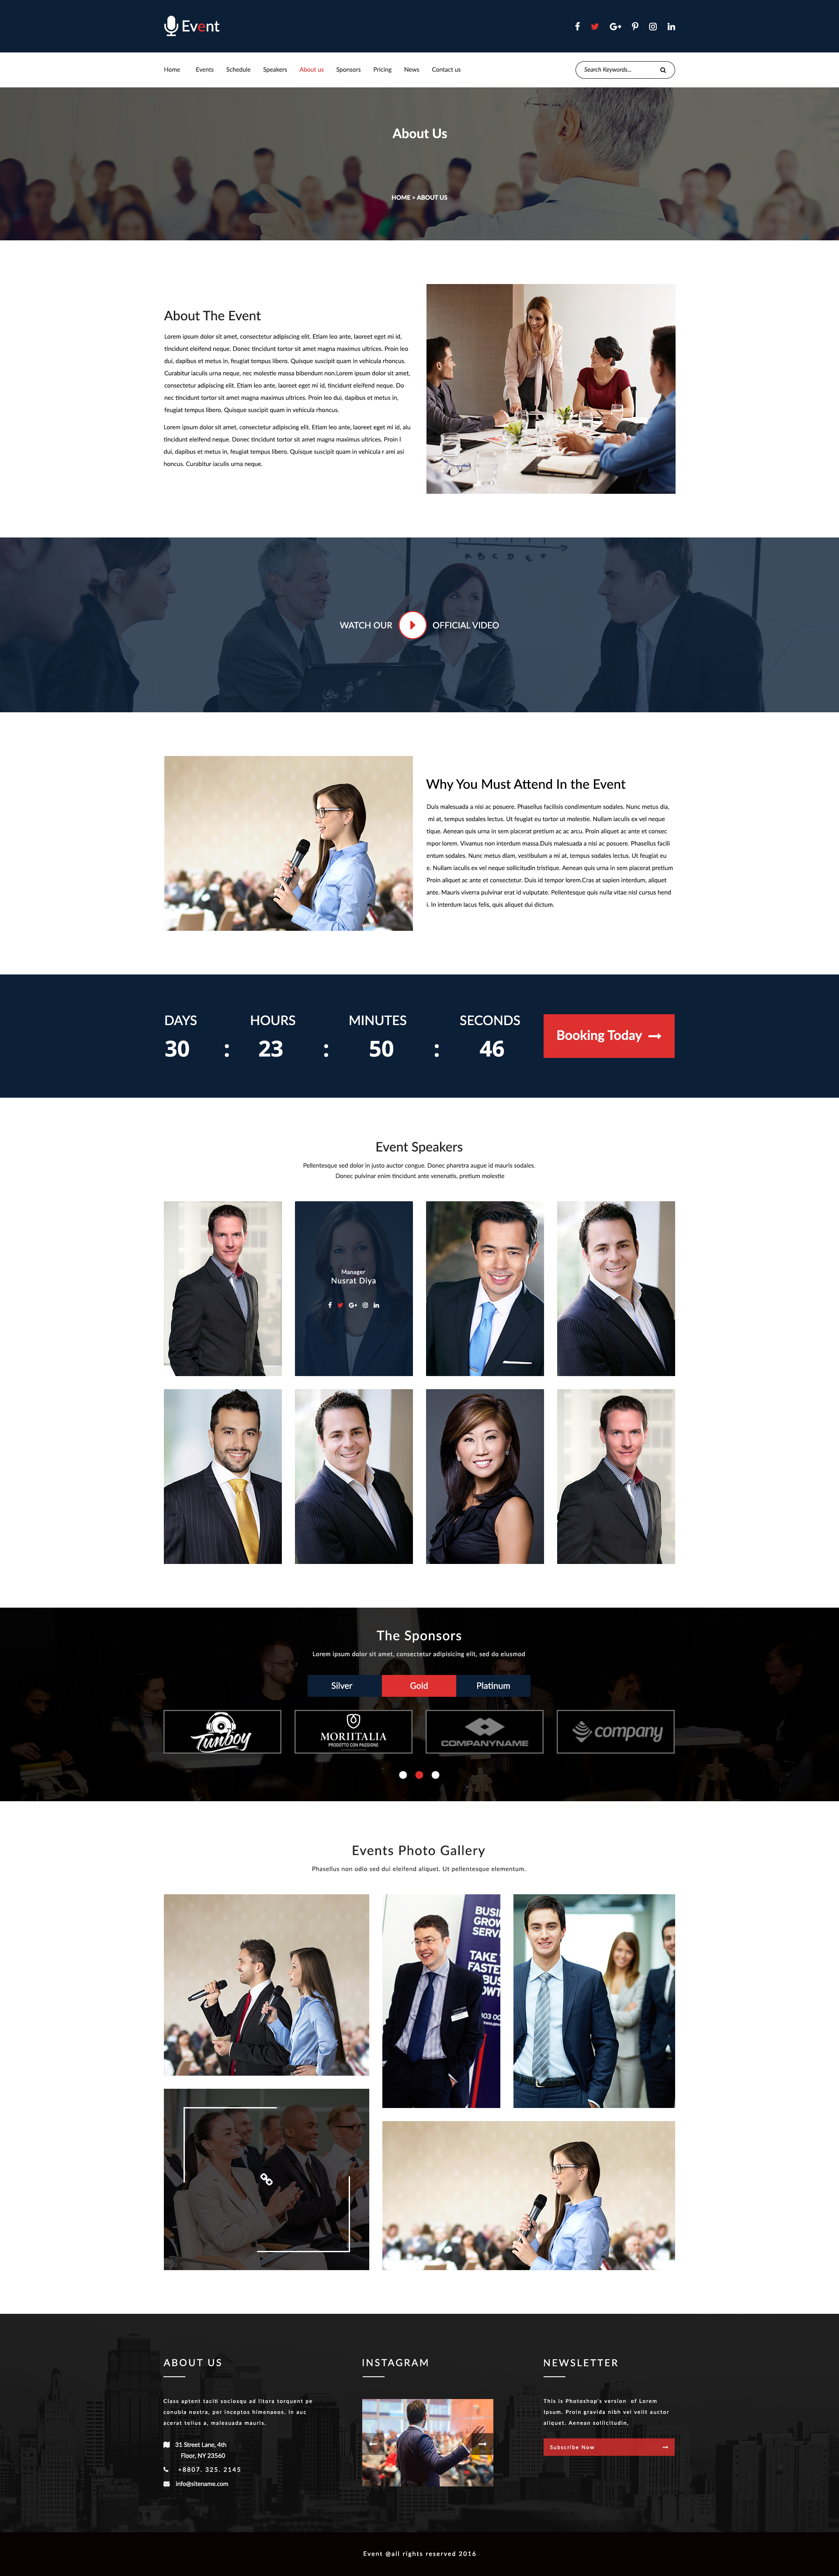 event an event and conference psd template by wowsketch themeforest